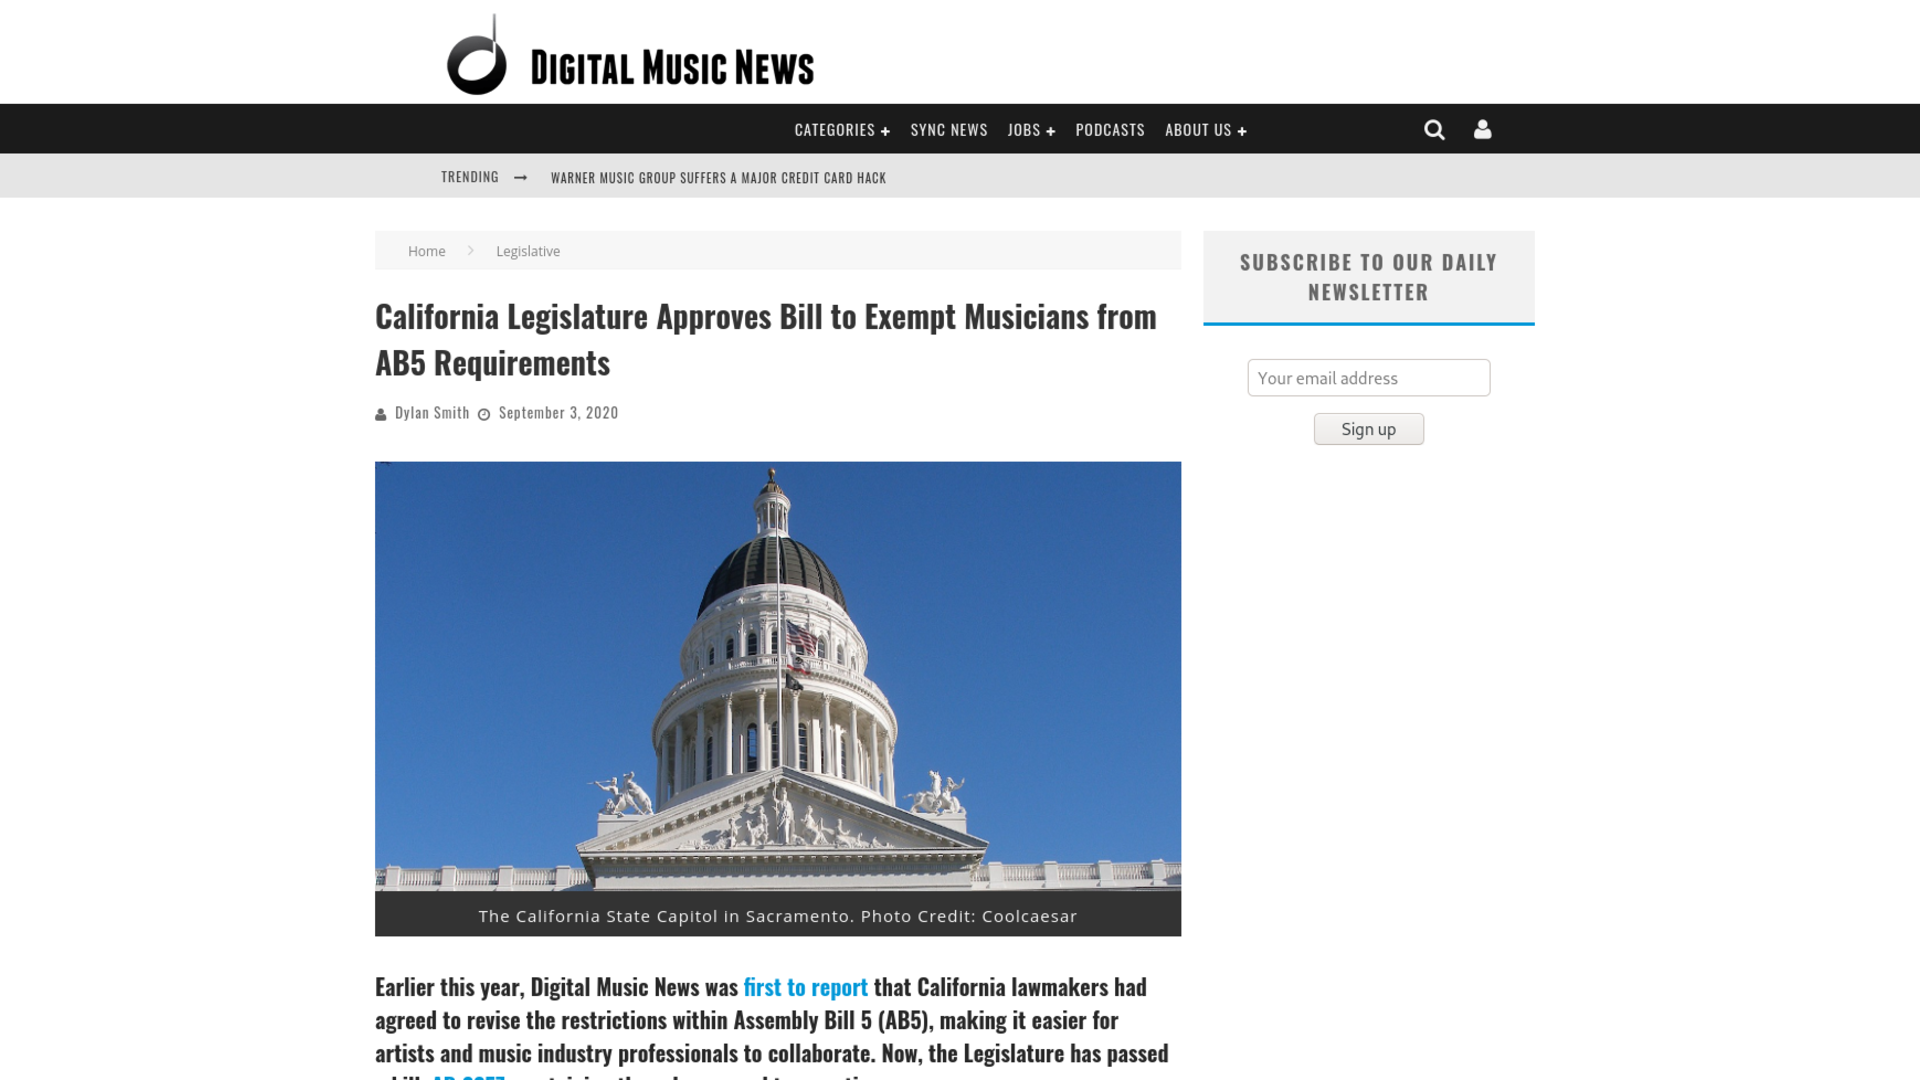 Fairness Rocks News California Legislature Approves Bill to Exempt Musicians from AB5 Requirements